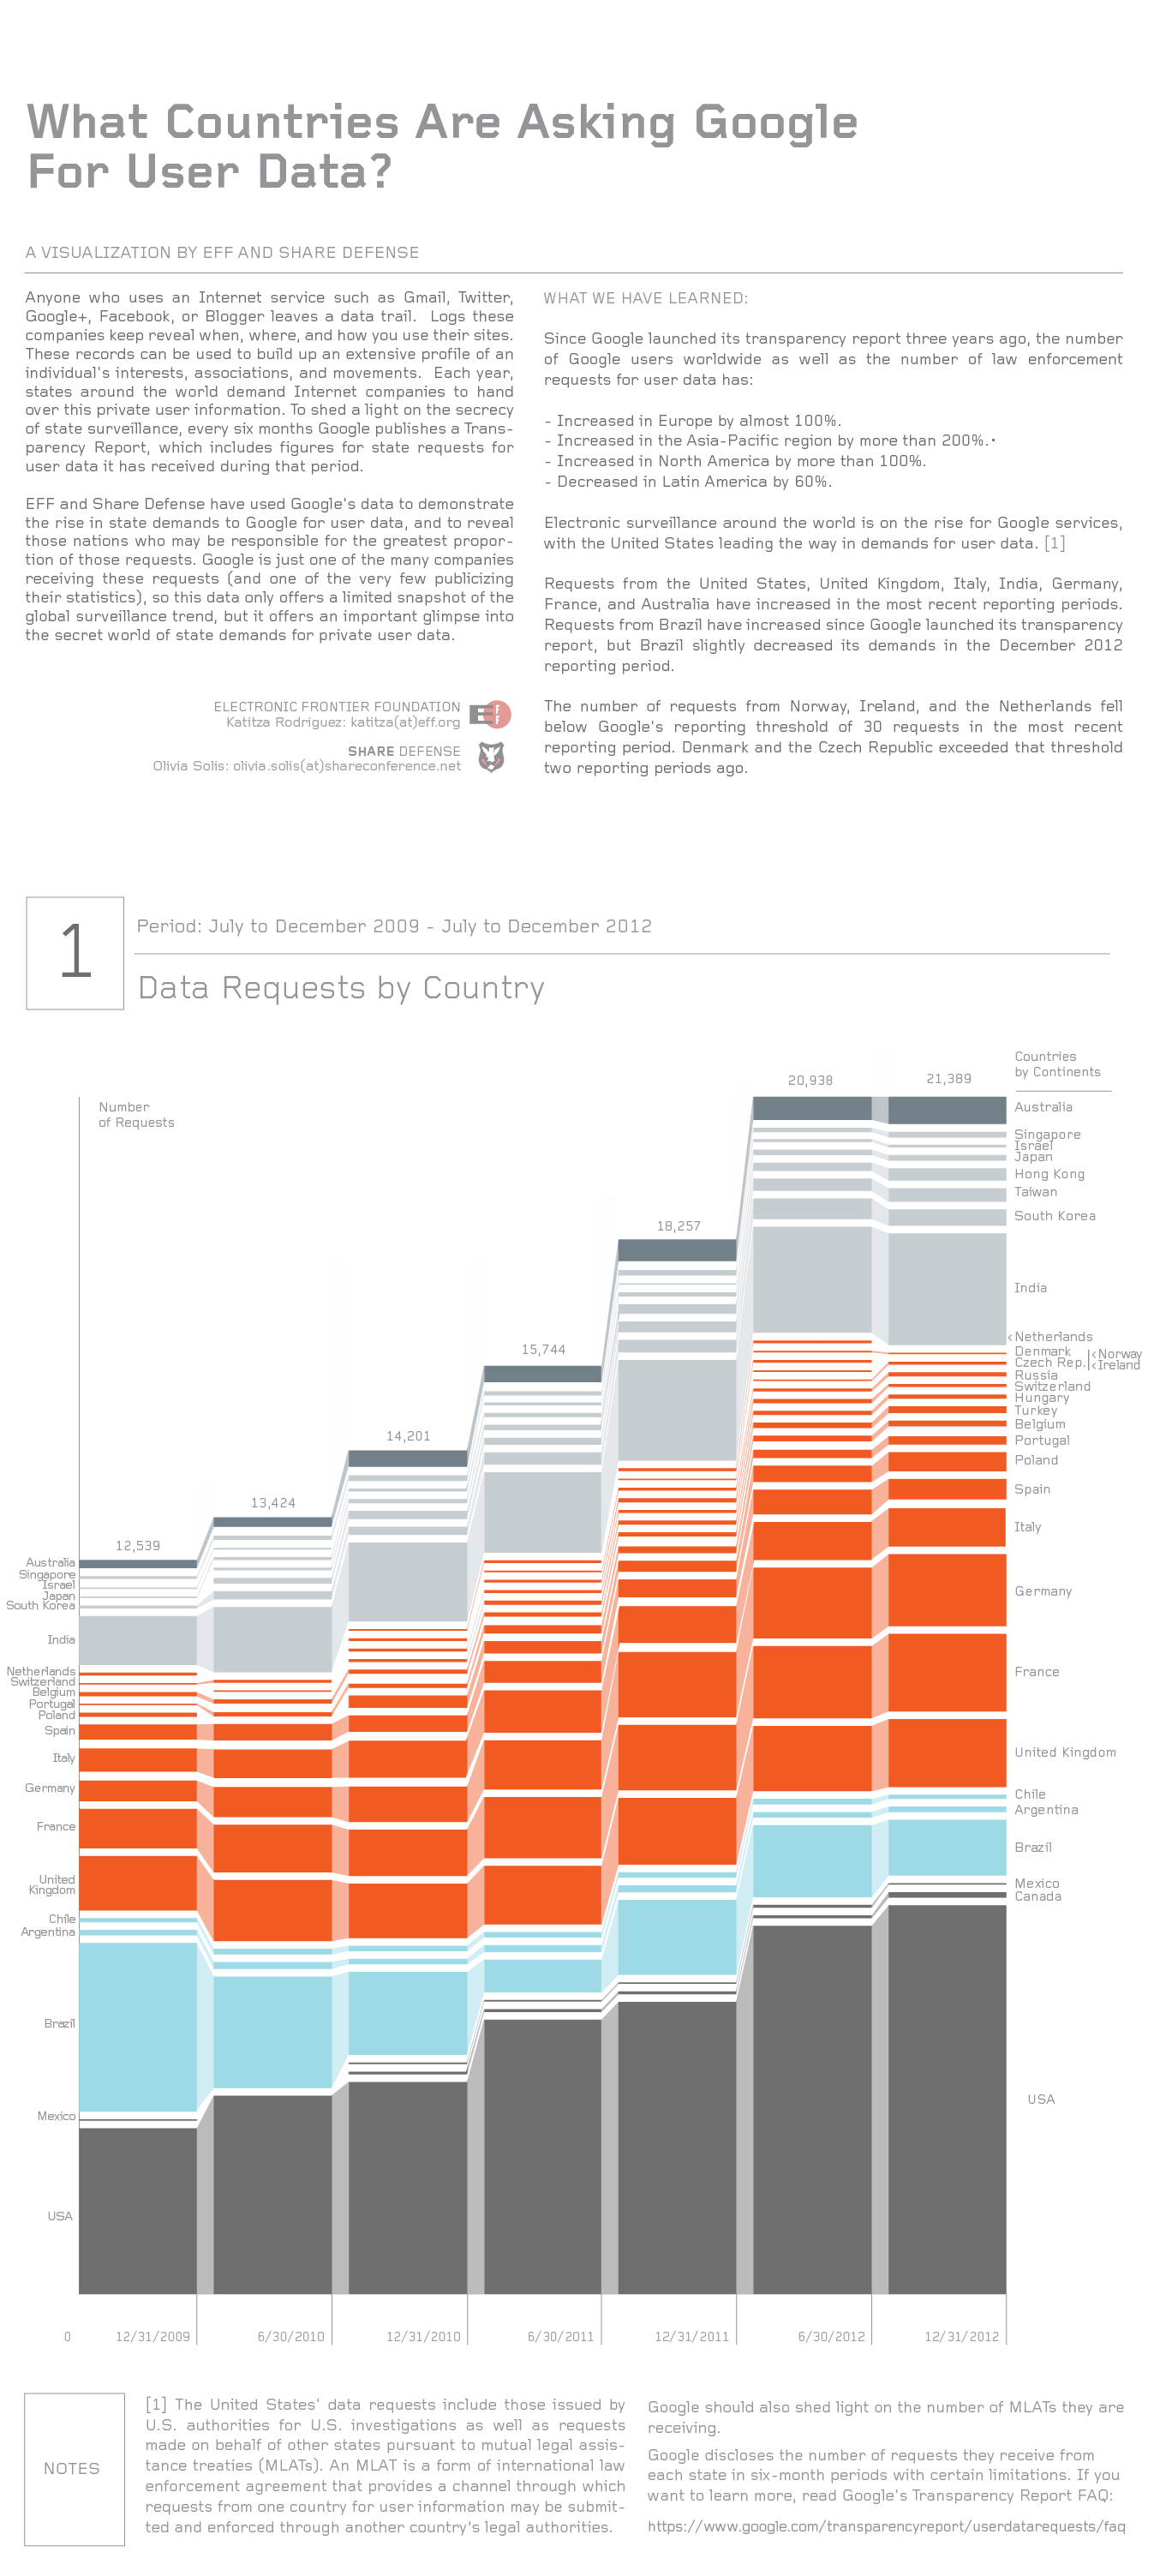 eff zoom eng 07 Reference: New Infographics from EFF and SHARE Defense Visualize Google Transparency Report Data